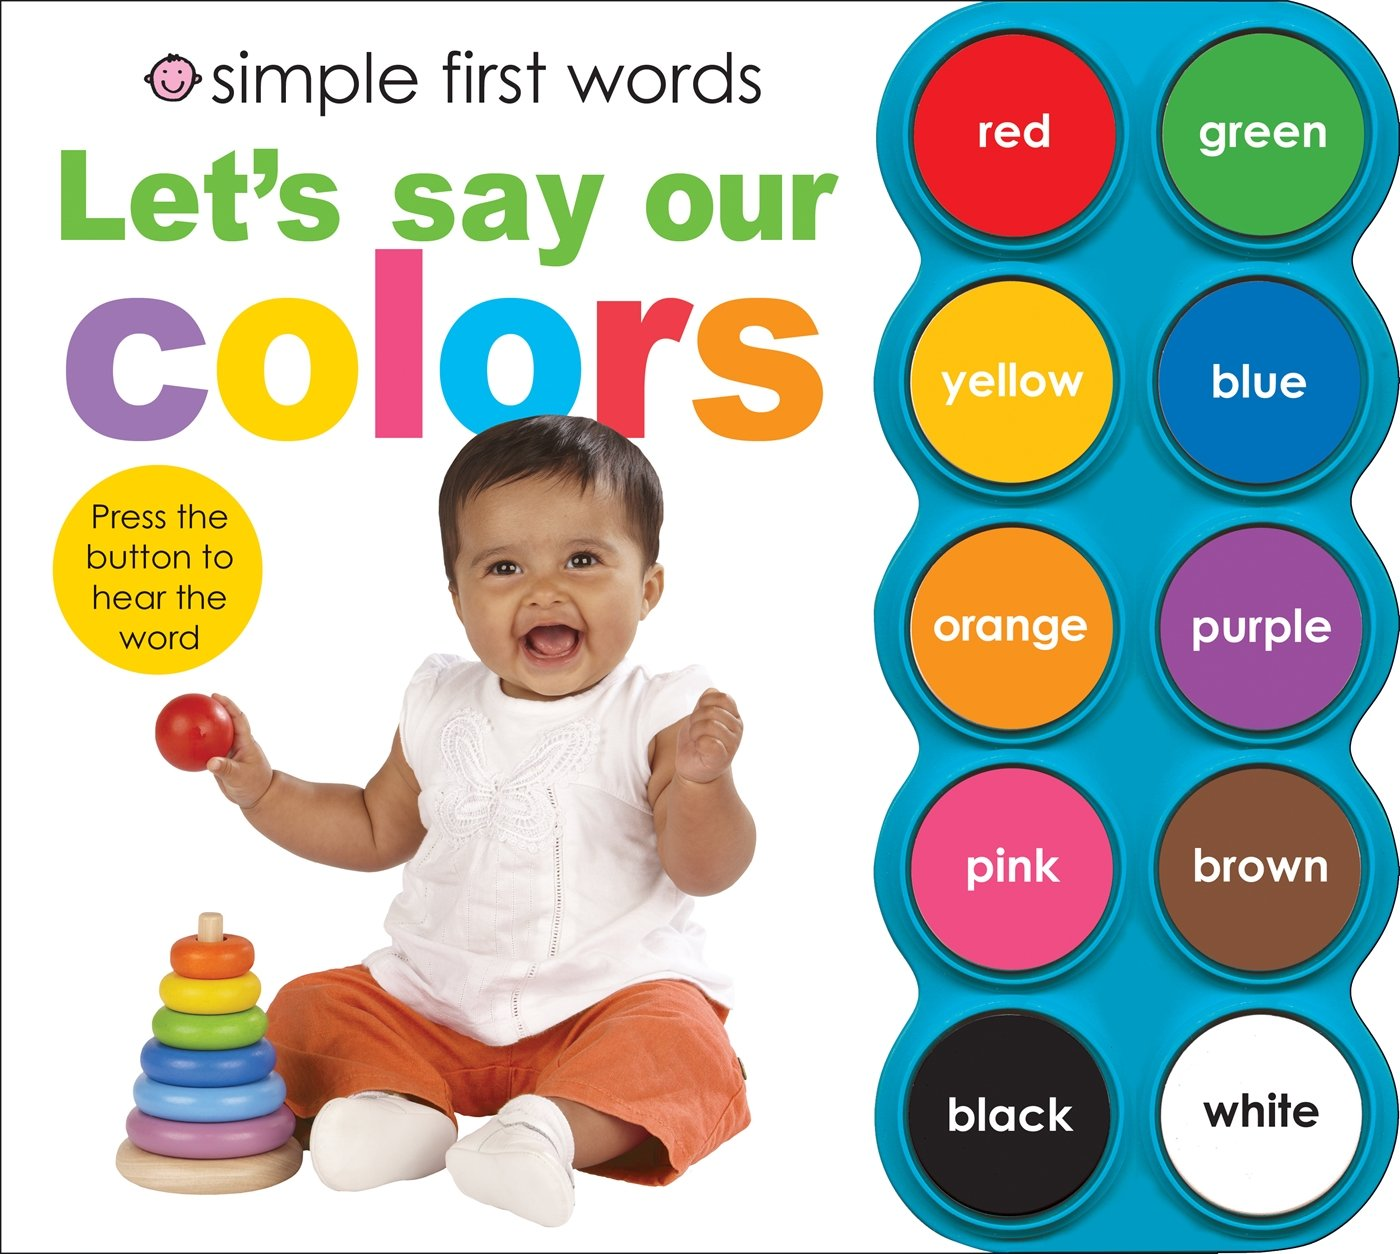 Amazon.com: Simple First Words Let\'s Say Our Colors (9780312506438 ...